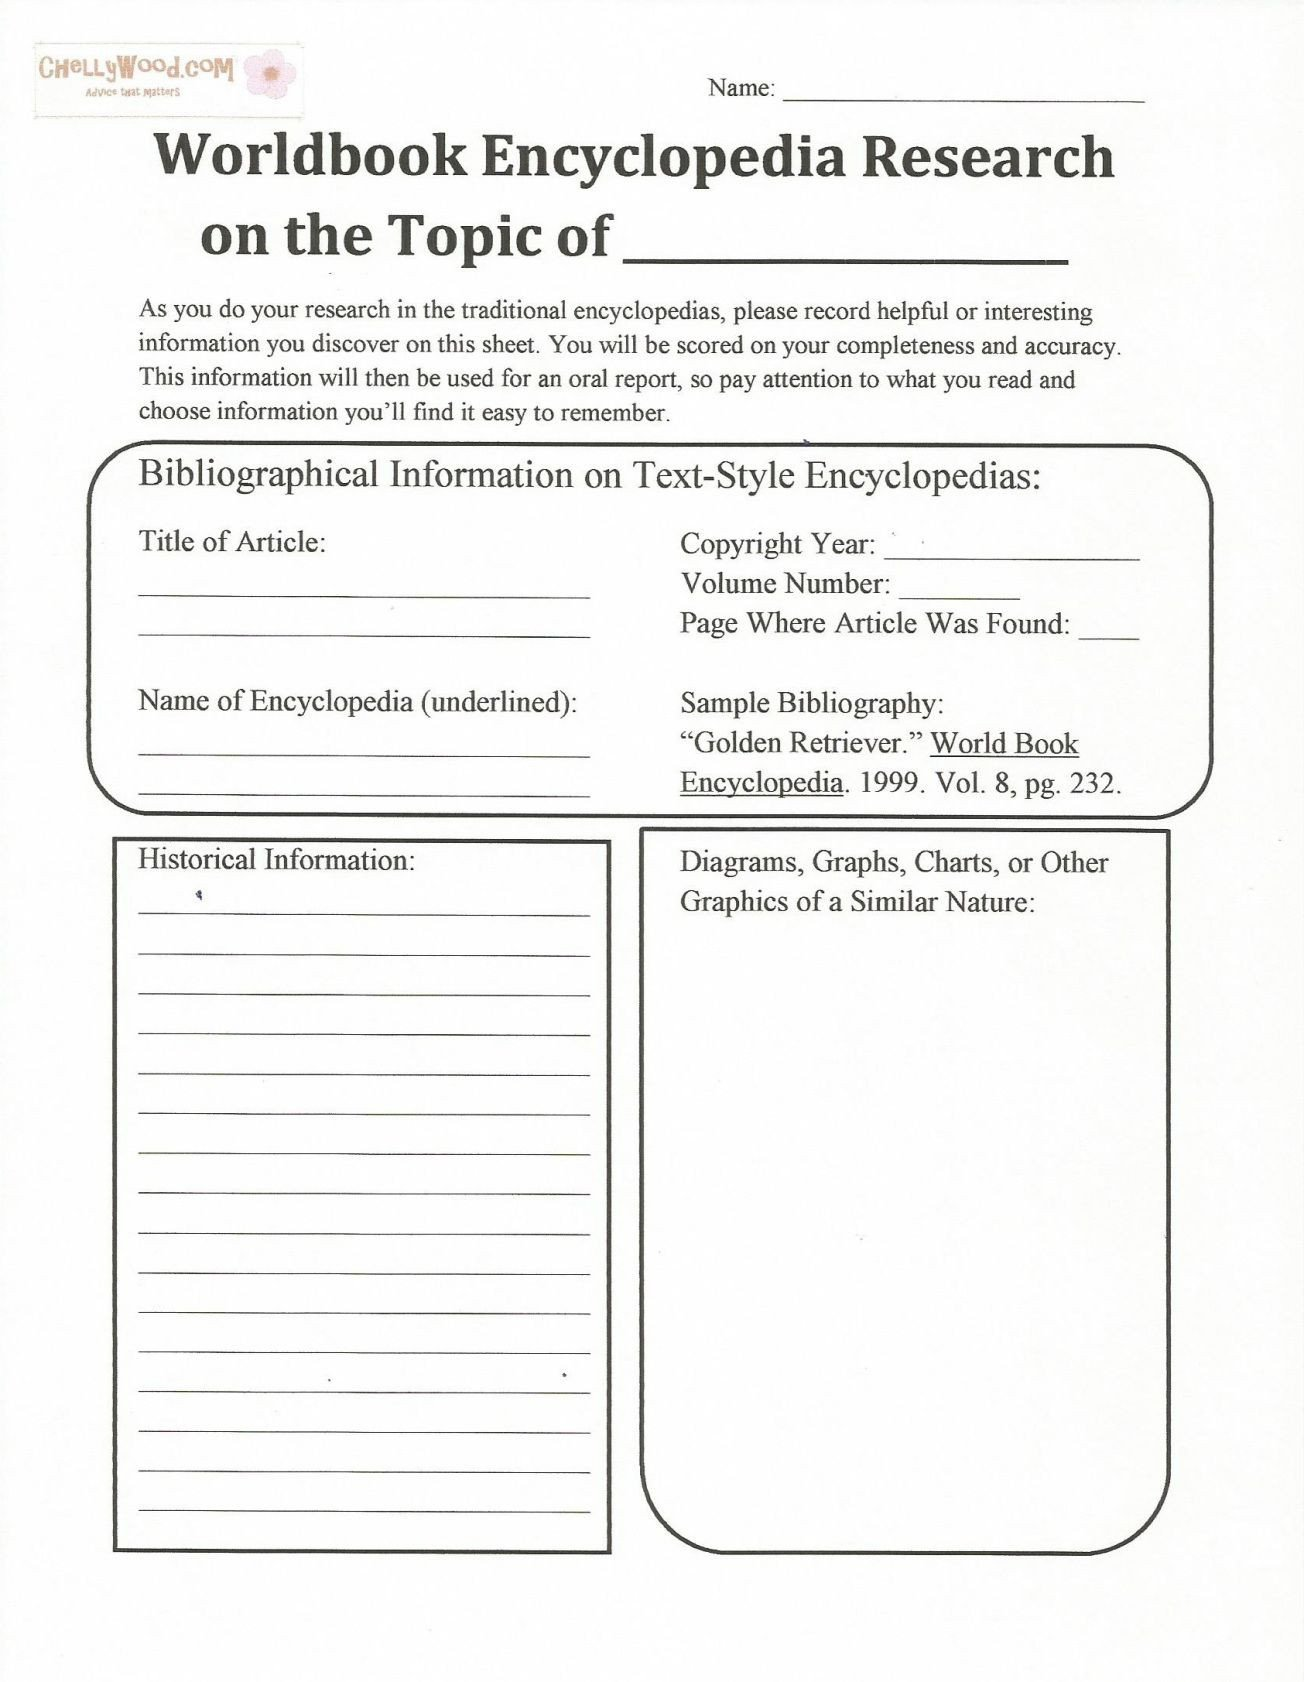 Dictionary Skill Worksheets 3rd Grade Free Printable Encyclopedia Handout for Teaching Research